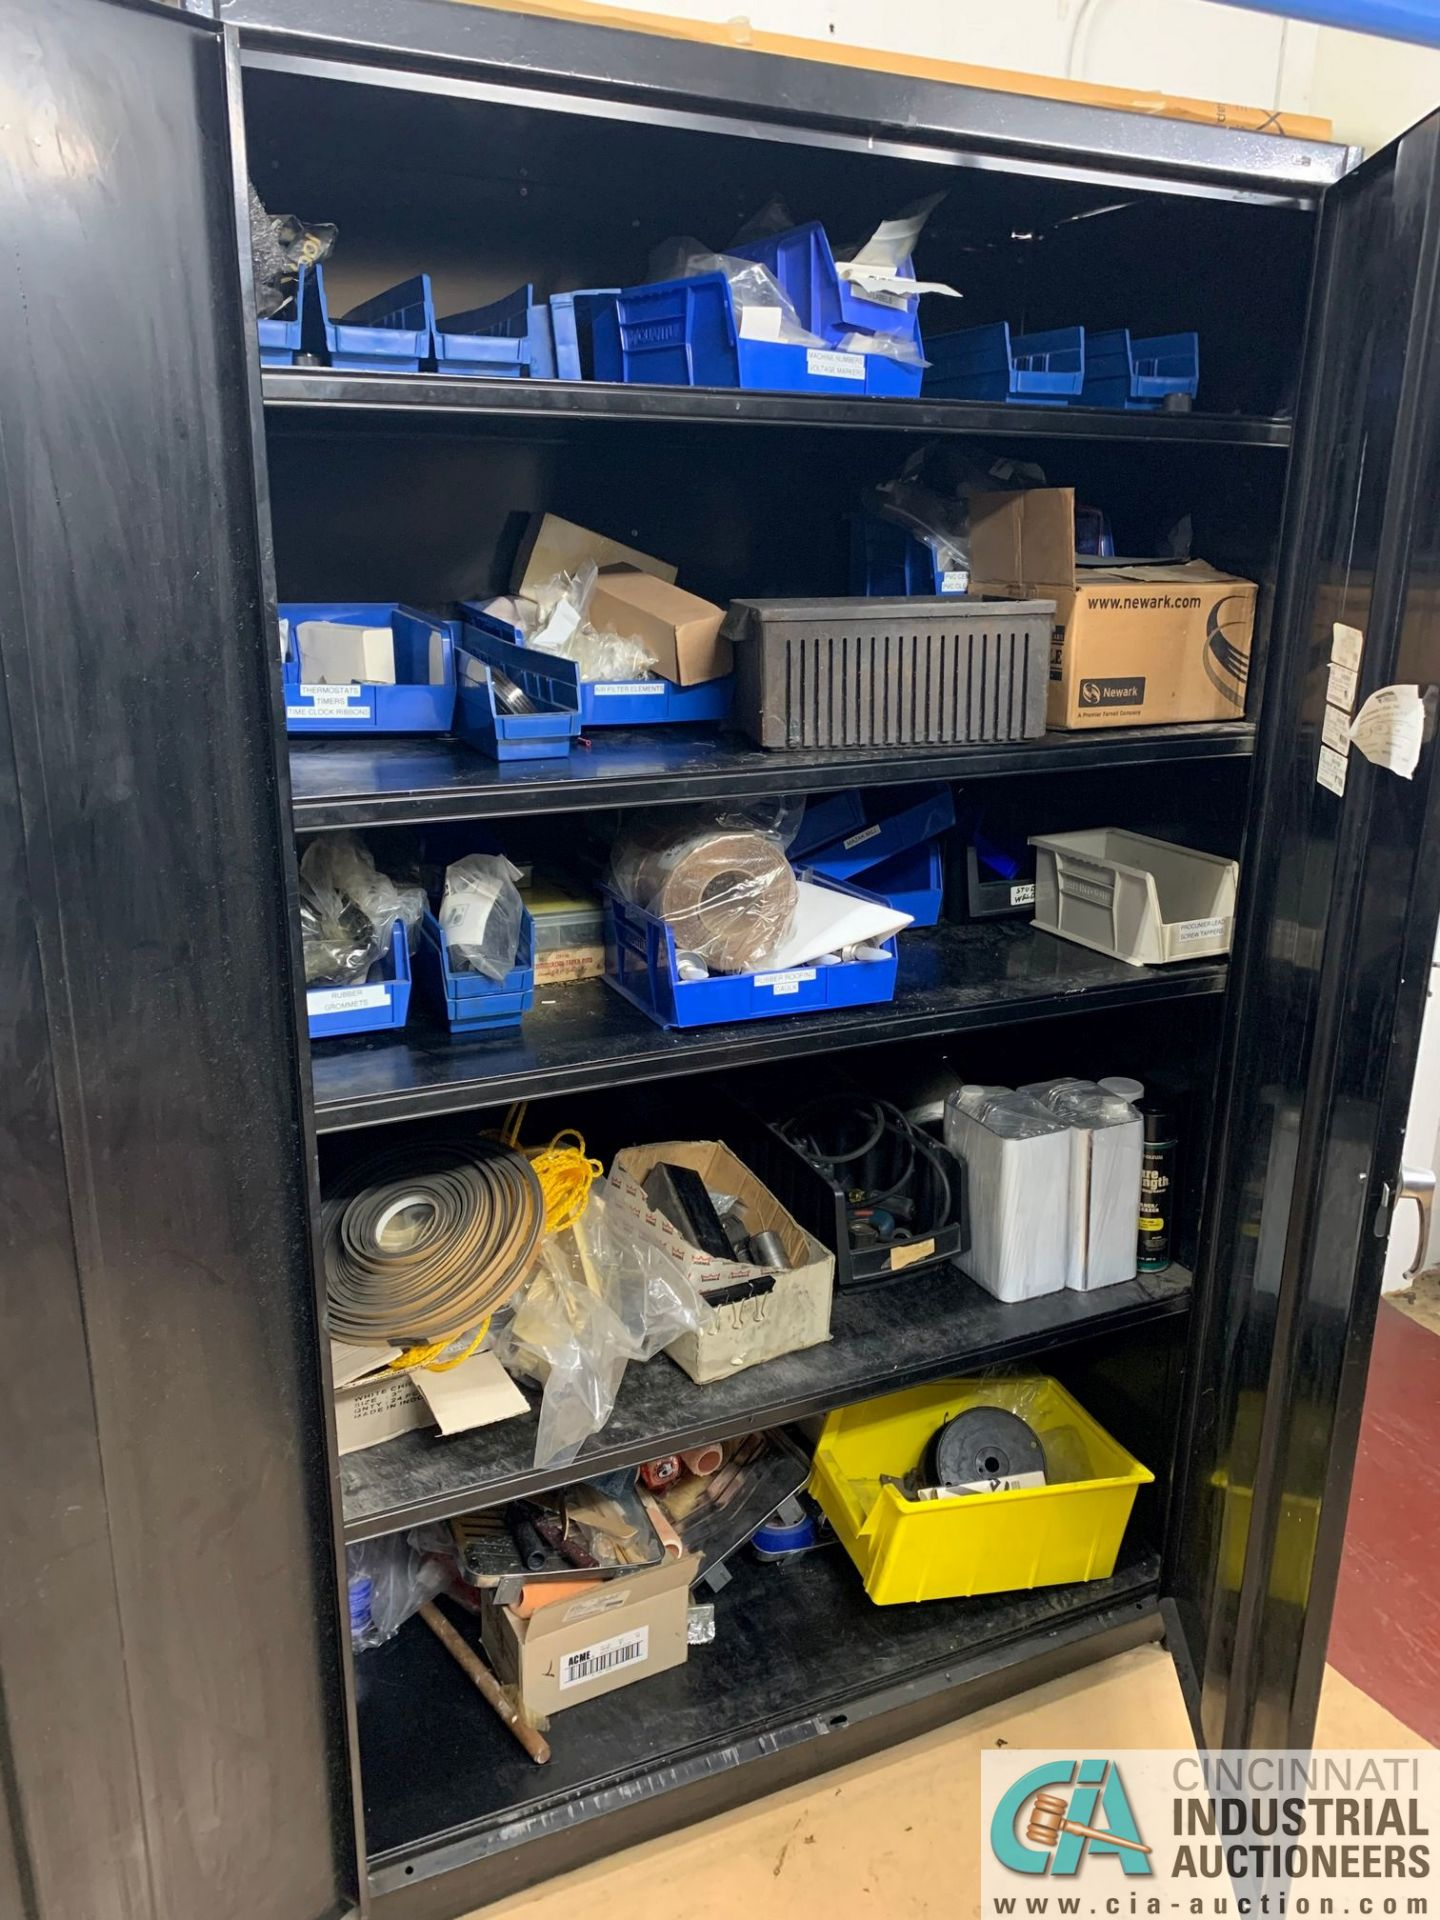 (LOT) (4) CABINETS WITH MAINTENANCE PARTS AND SUPPLIES, FUSES, WIRE, CONNECTORS AND RELATED - Image 11 of 13